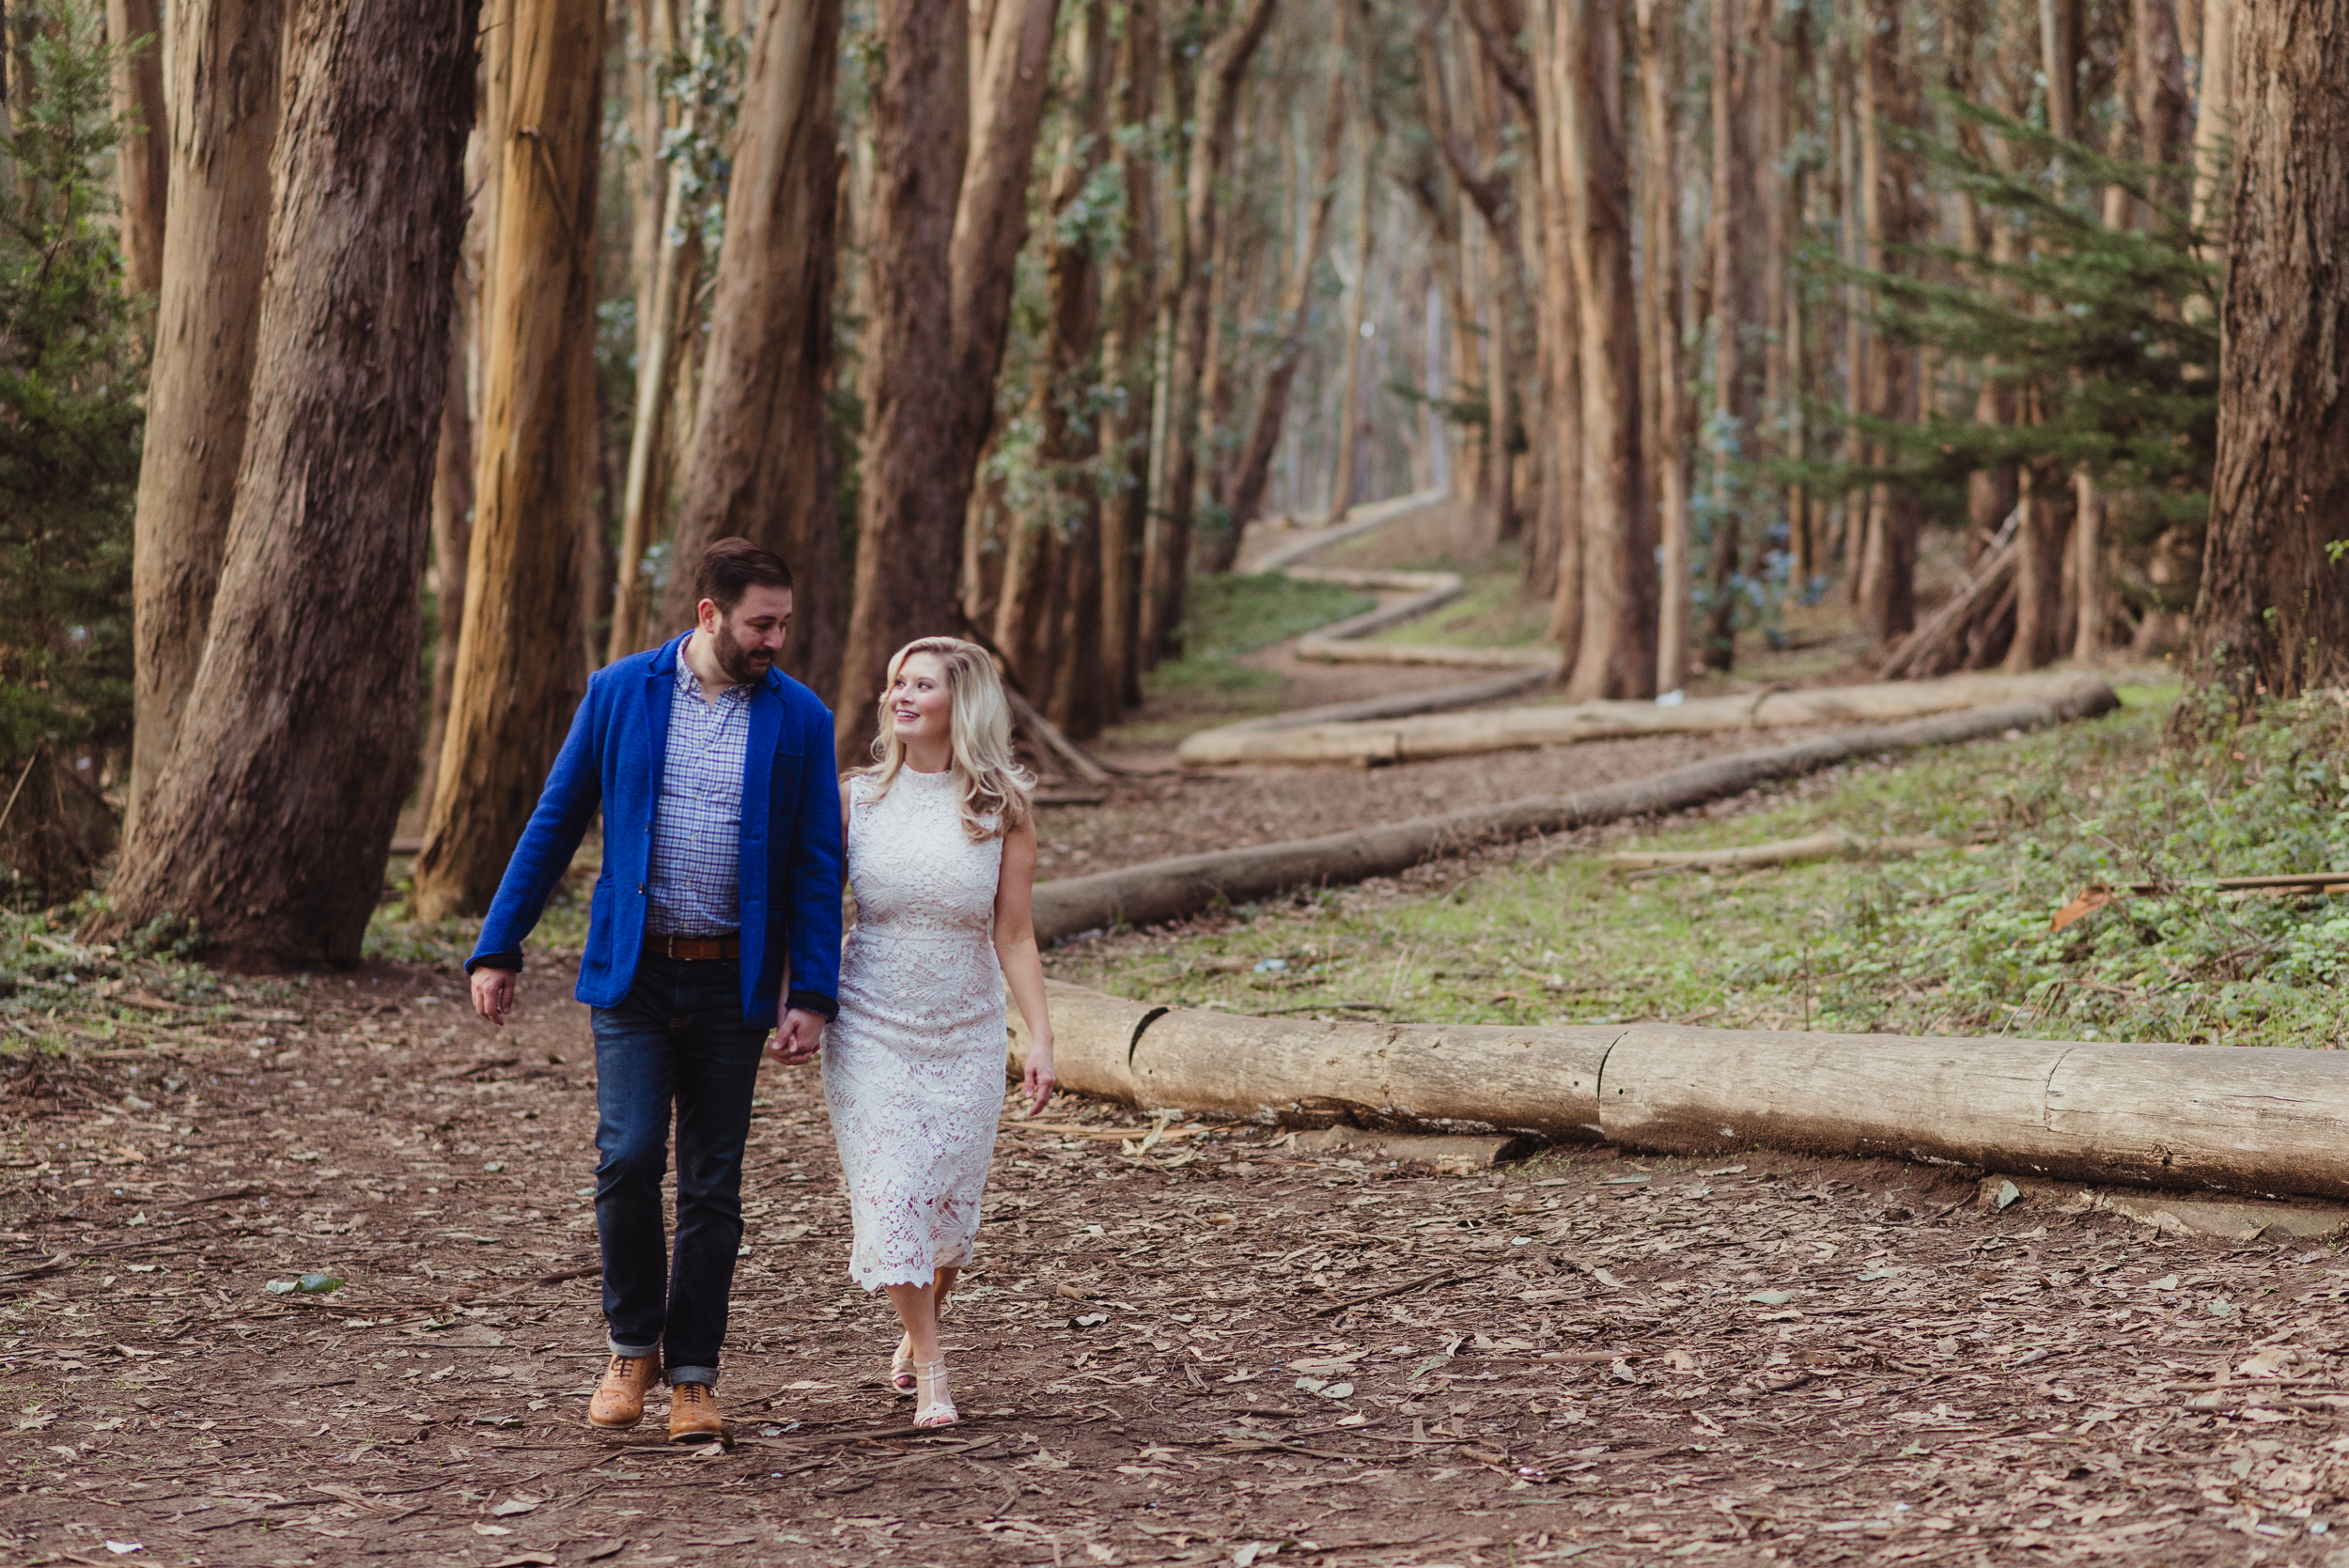 presidio-woodline-baker-beach-SF-engagement-session-vivianchen-067.jpg